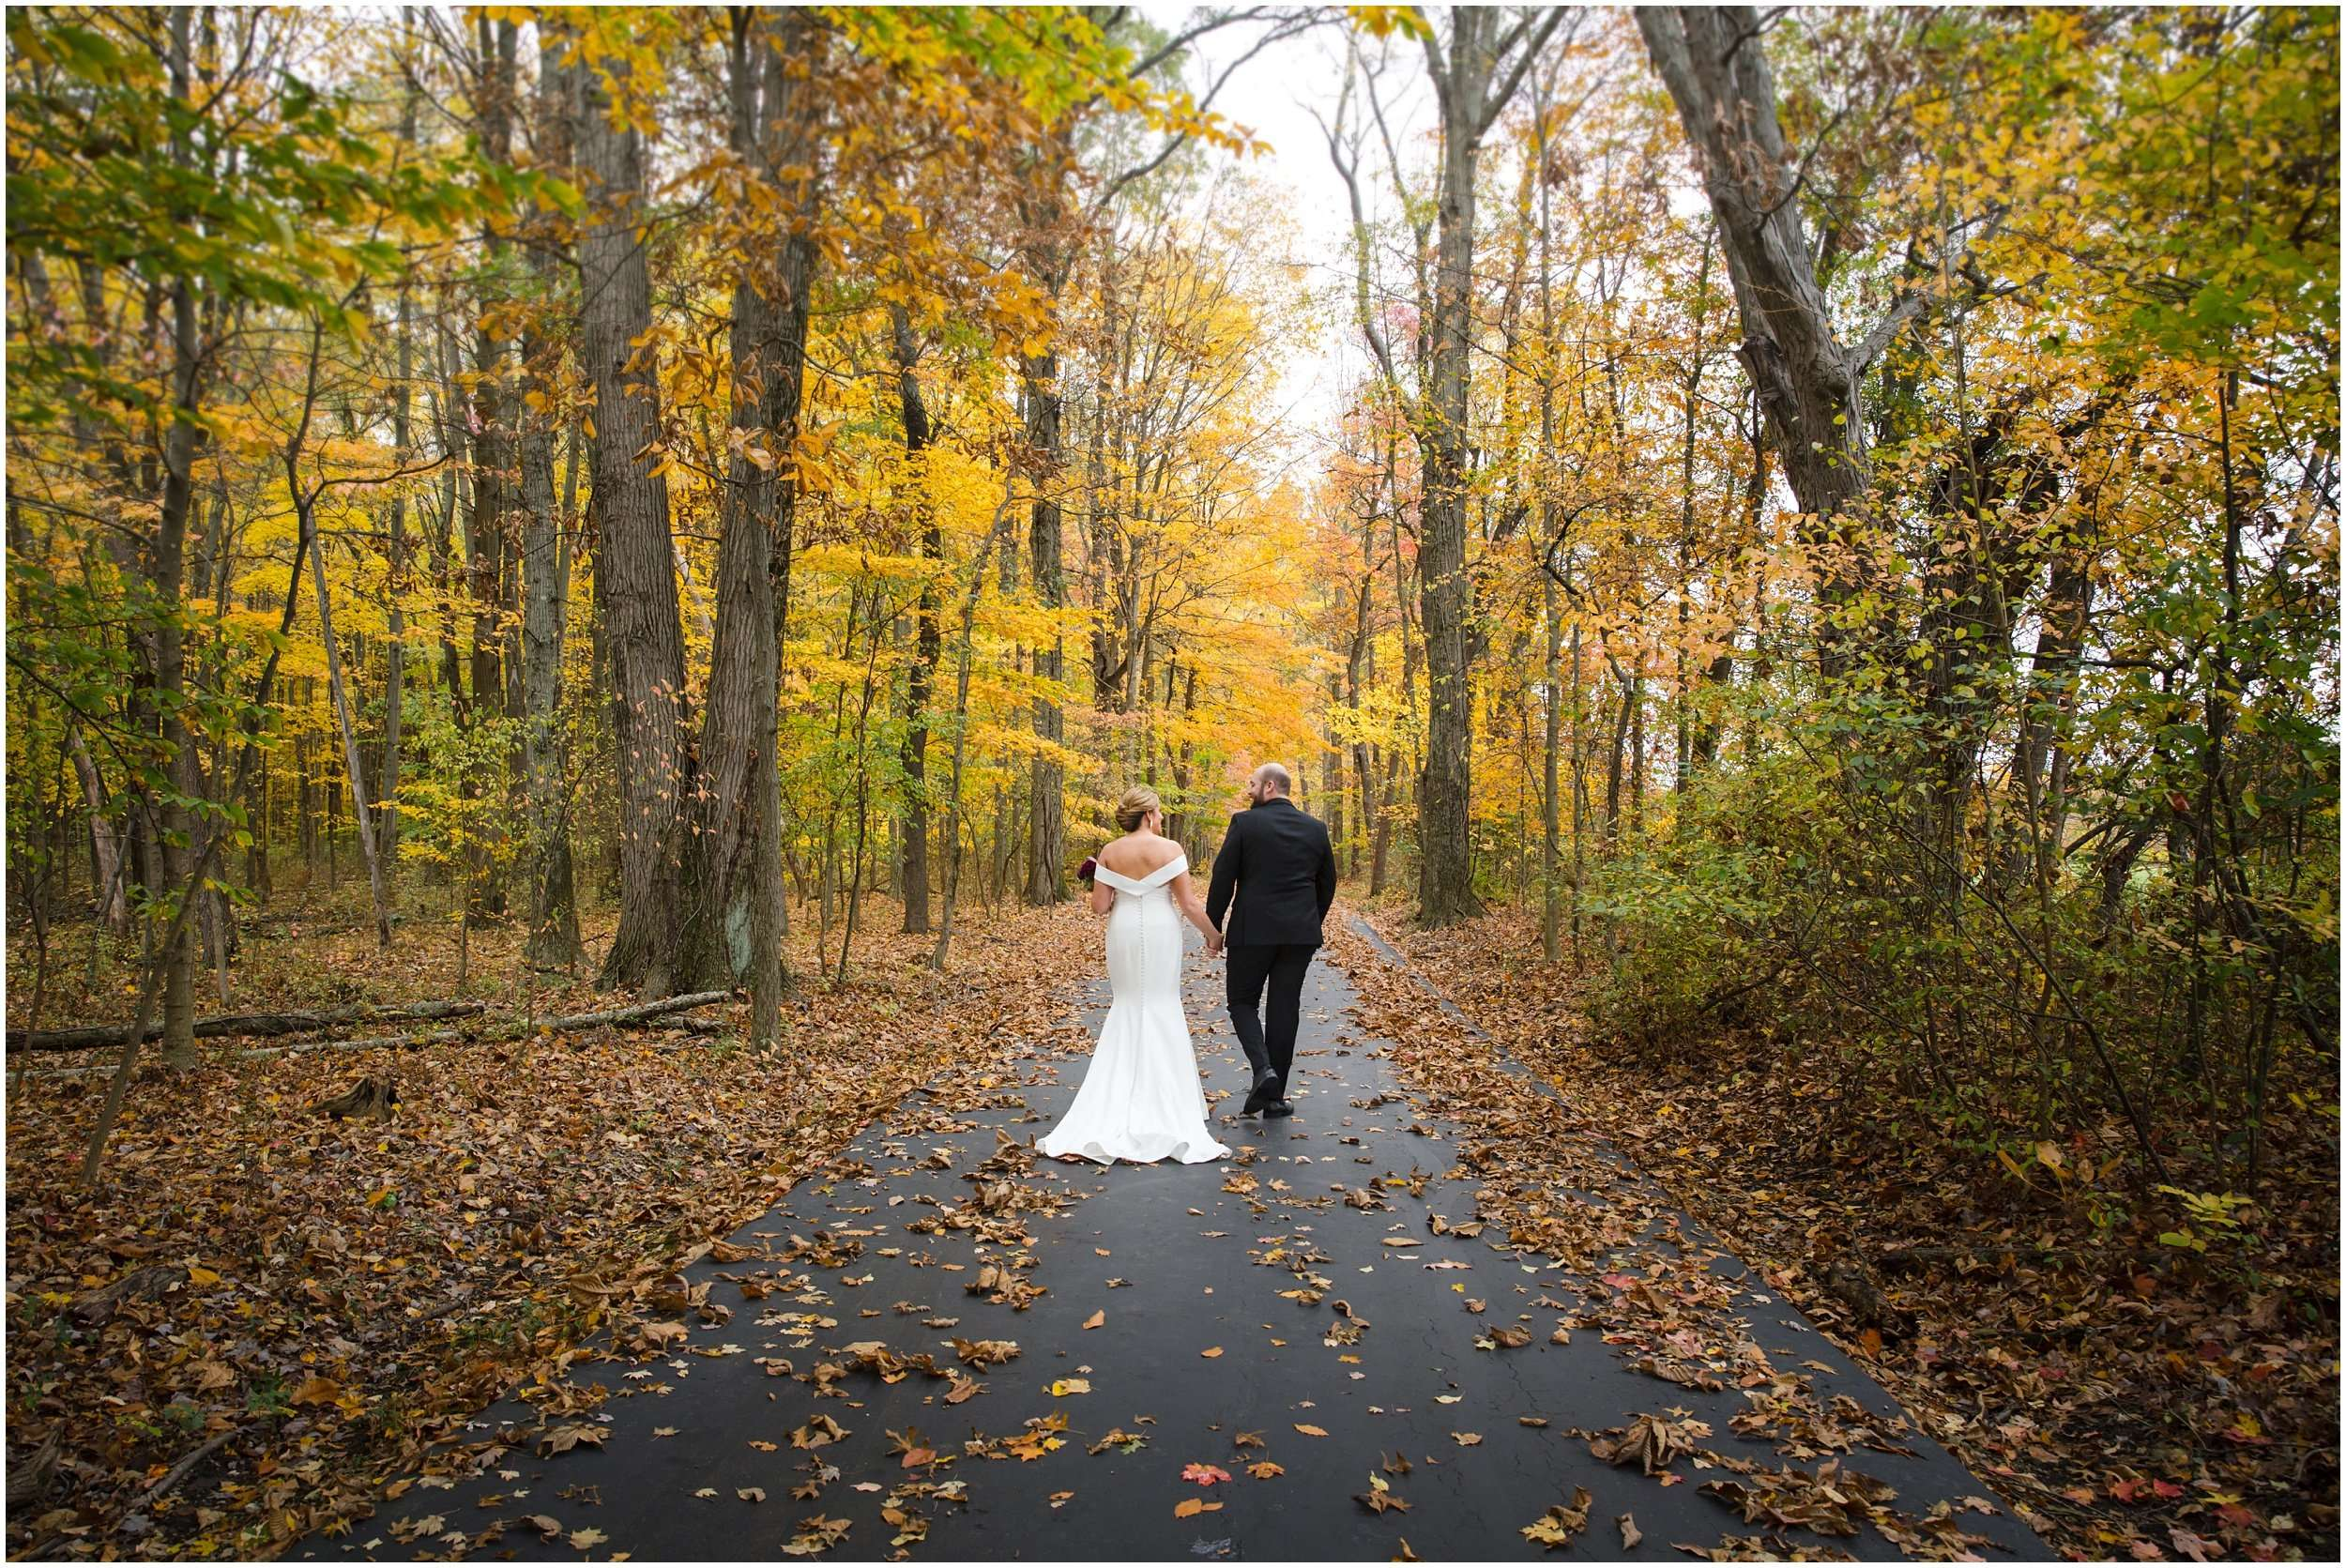 a bride and groom are holding hands and walking down a long paved pathway in the woods among tall orange and yellow trees